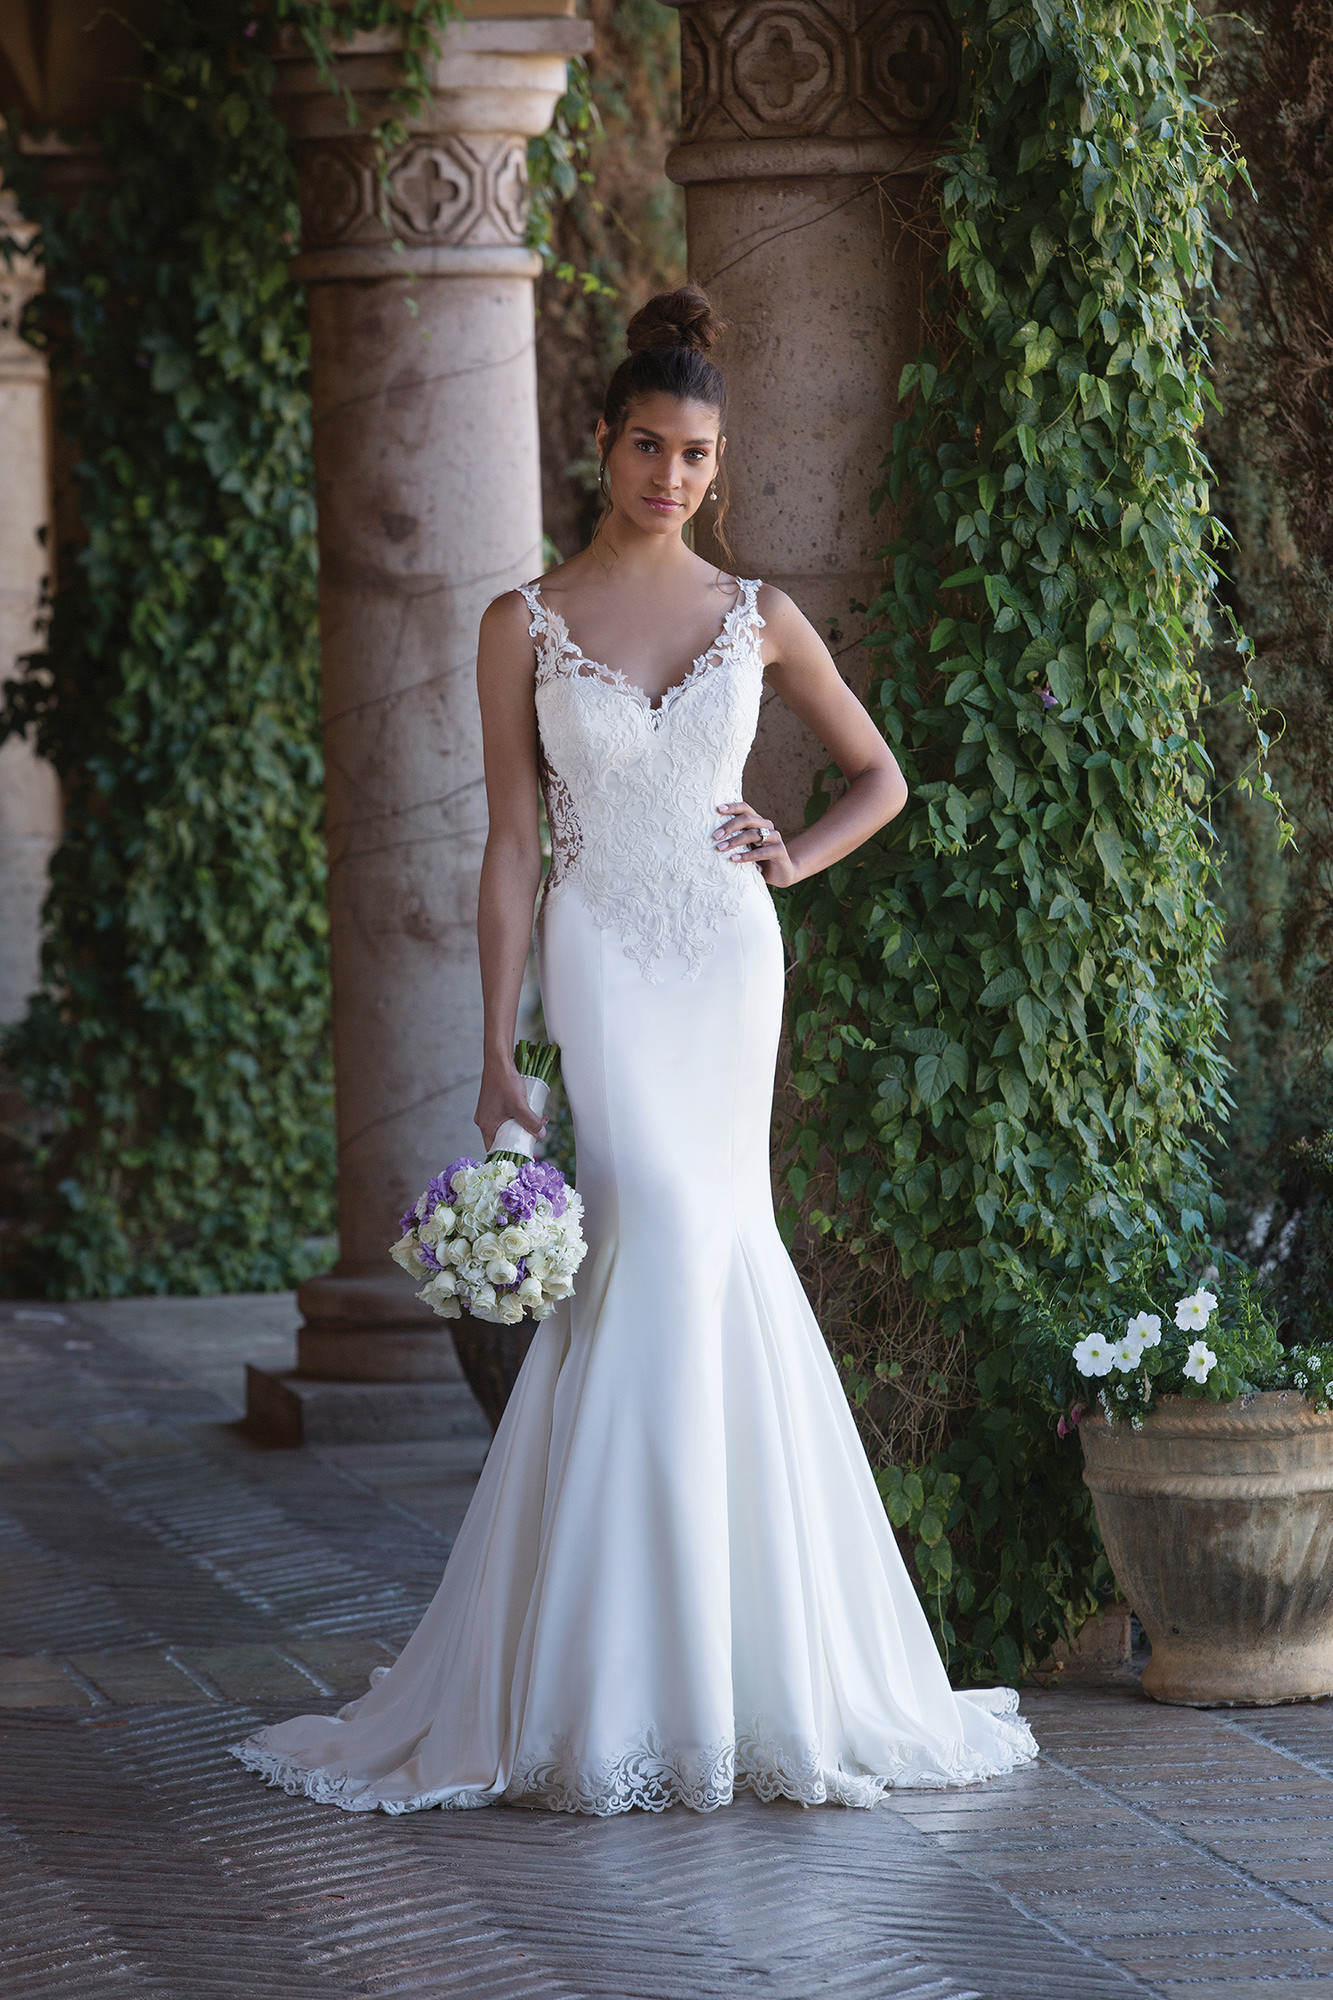 Wedding Dresses By Sincerity Bridal 4015 Weddingwireca